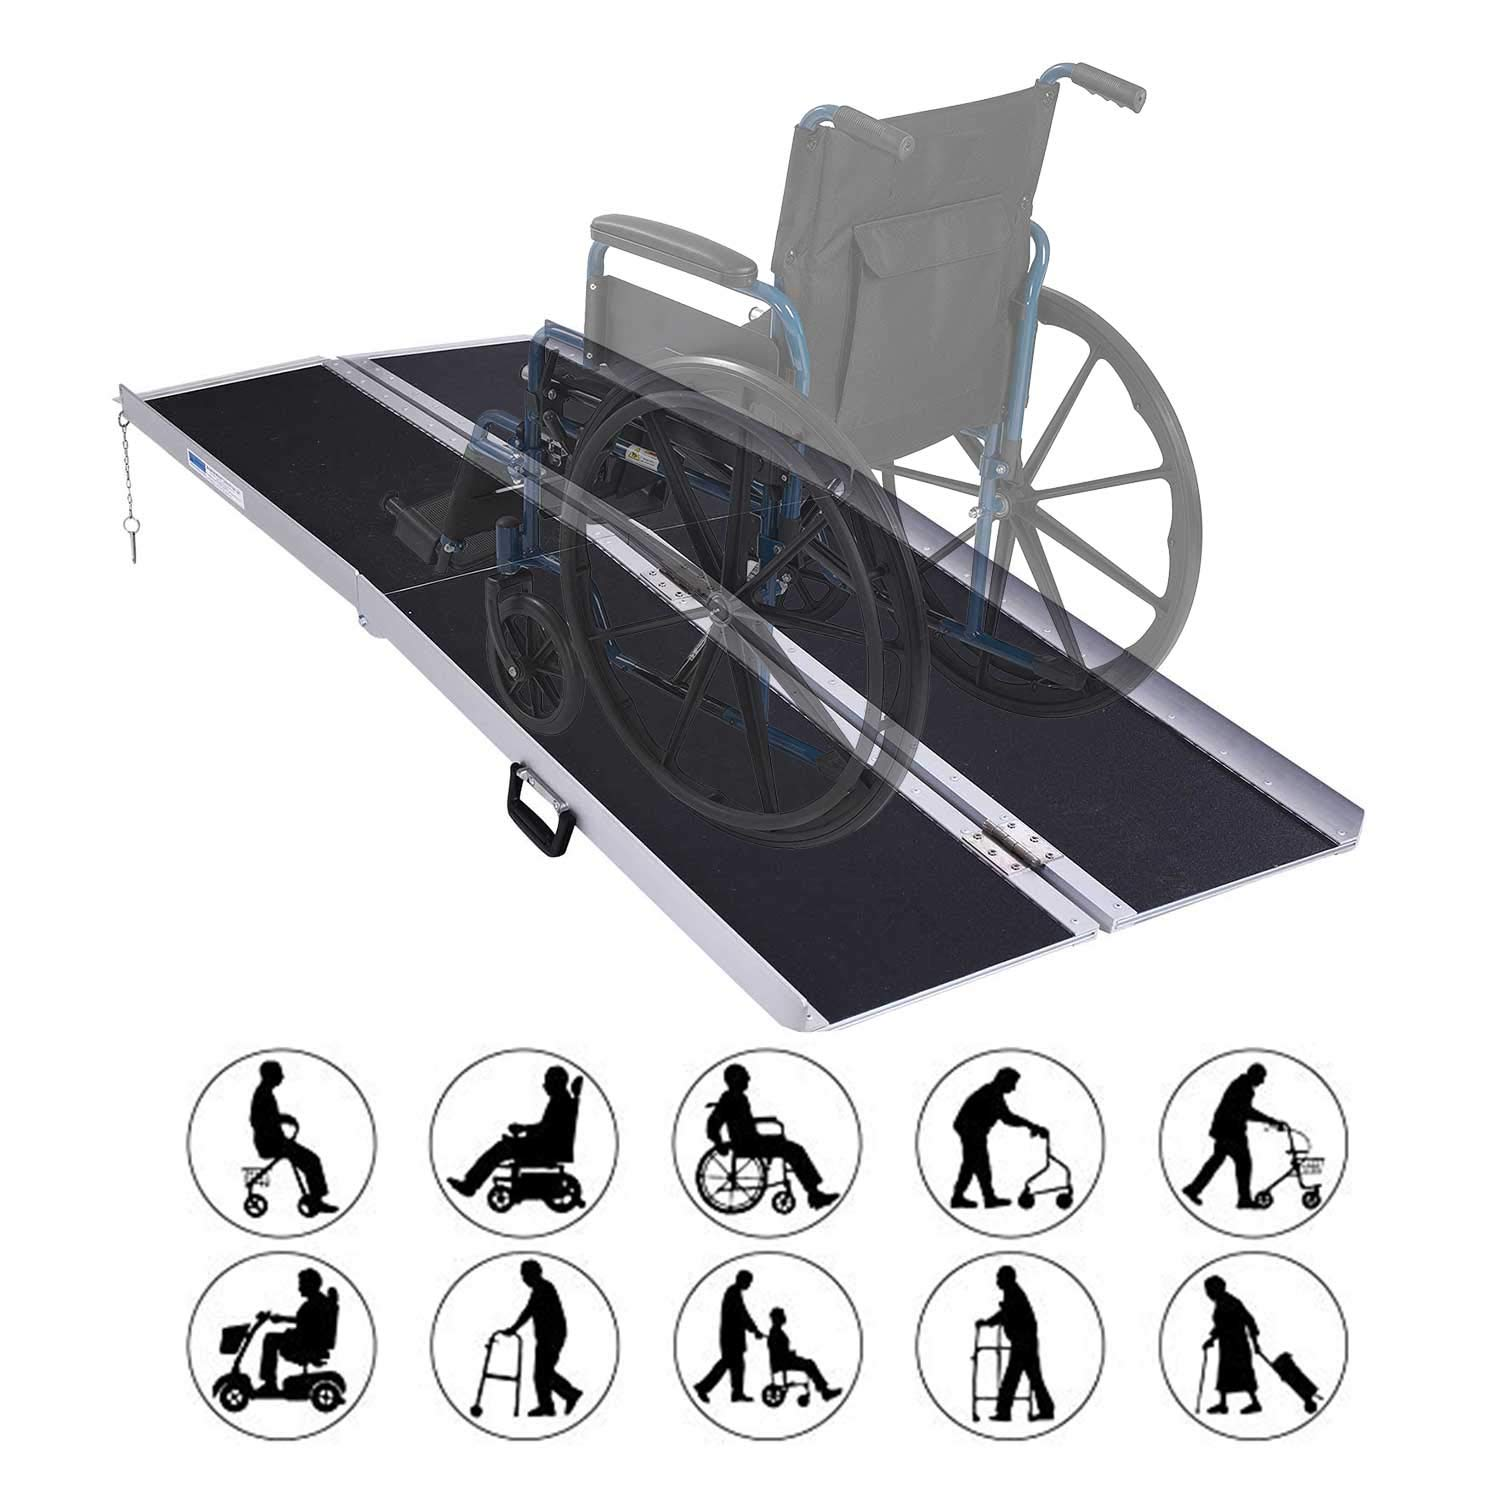 Forfar 6 Feet Wheelchair Ramp Aluminum Multifold Non-Skid Folding Mobility Scooter Portable Traction Ramp with Carrying Handle